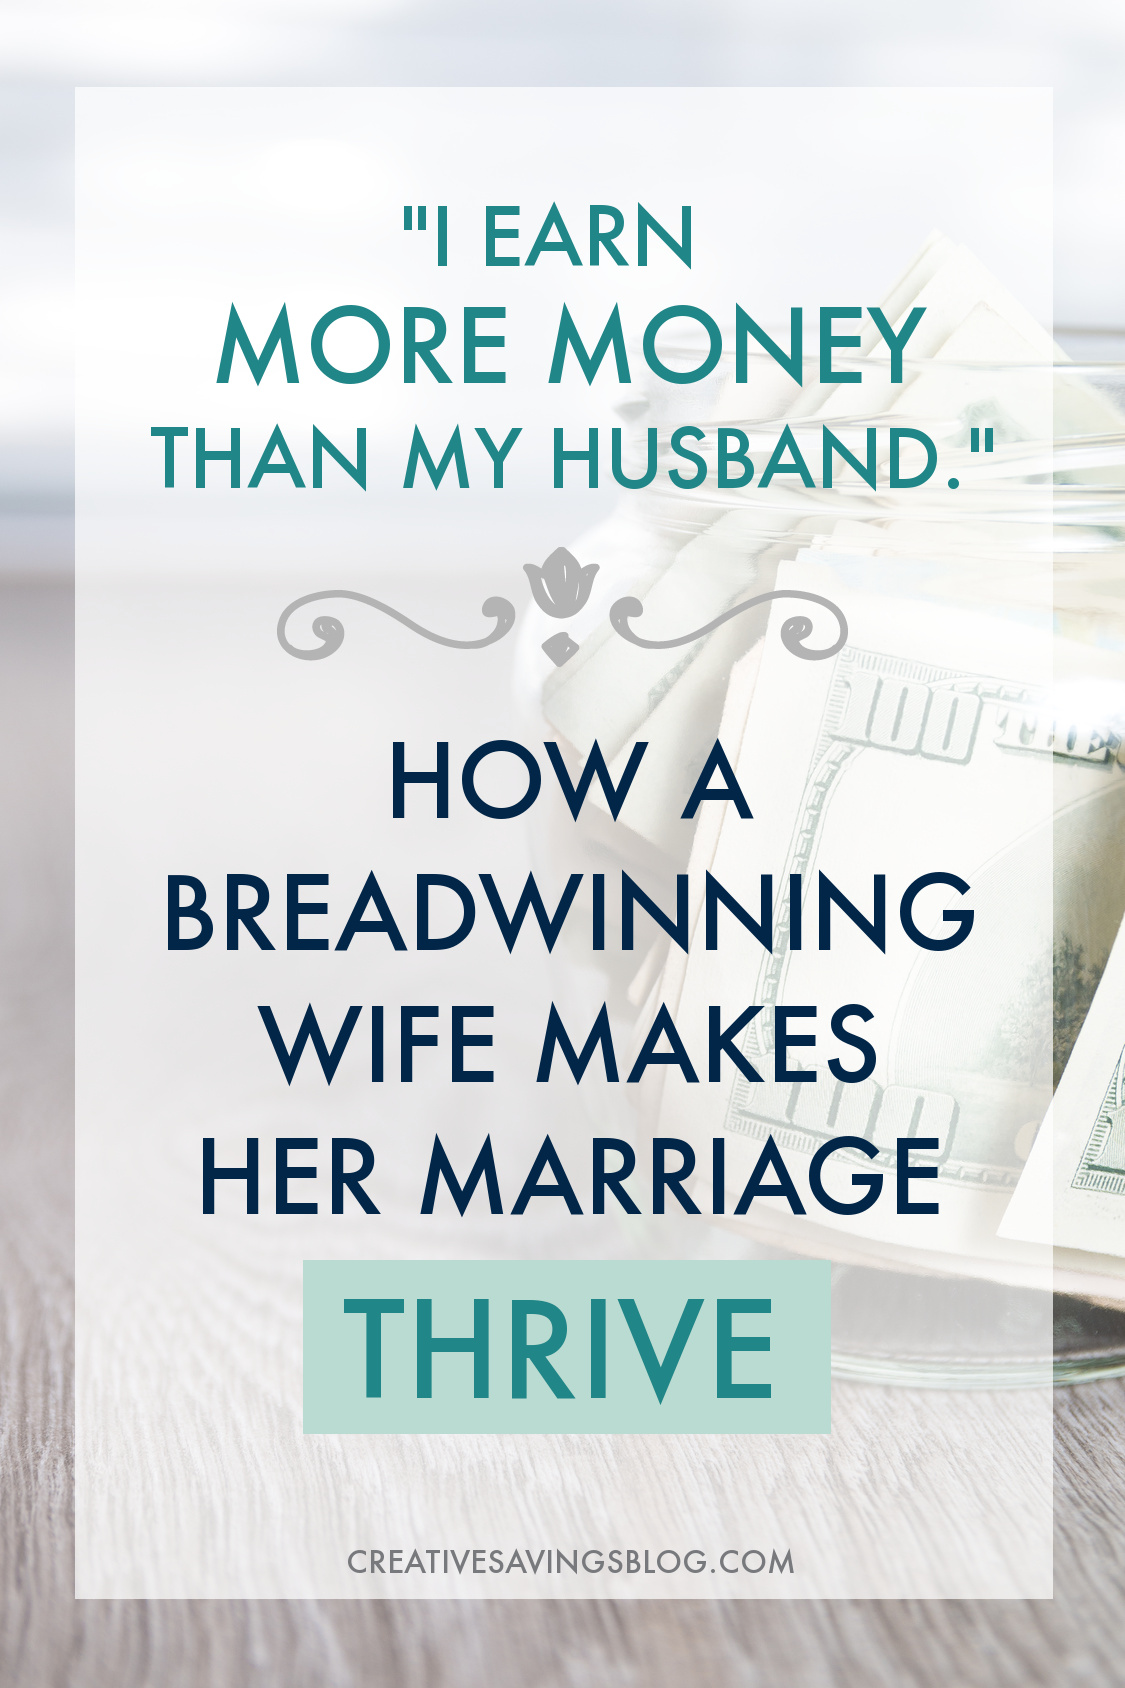 Wow! It's so awesome to see this girl win at business and thrive in marriage! It seems like everyone gives women the choice of either making money in the business world or being happy at home. This girl breaks down how she manages both.